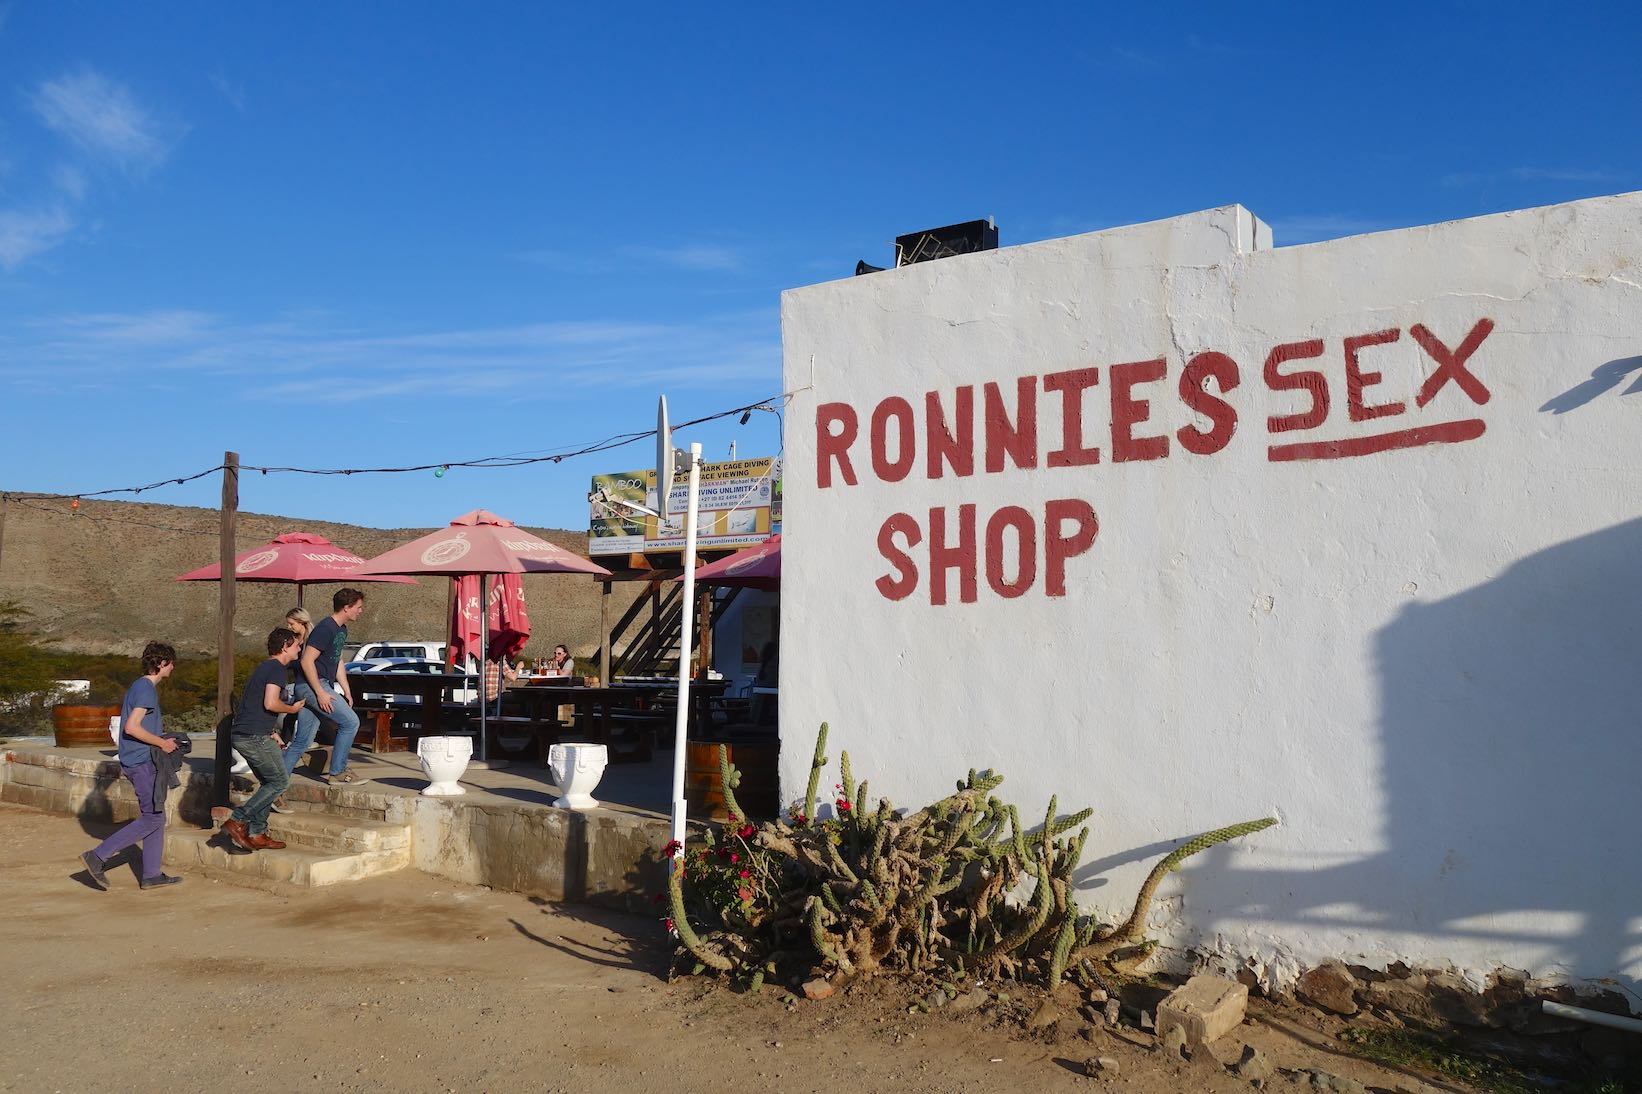 Ronnies Sex Shop - Restaurant on the Route 62